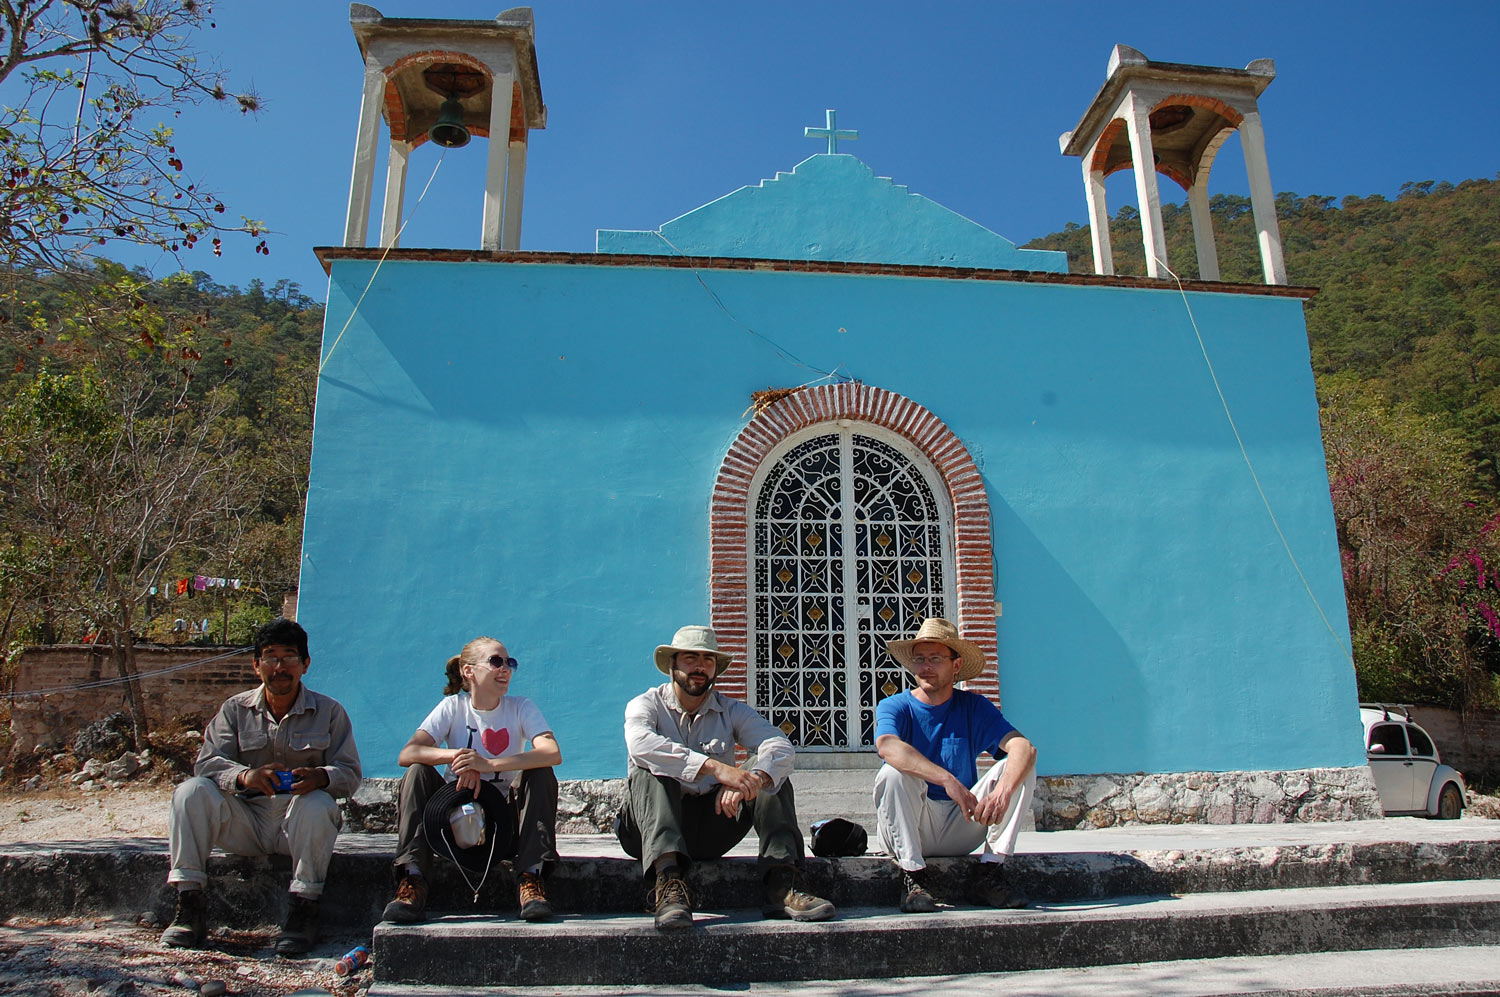 Four people sitting in front of a church